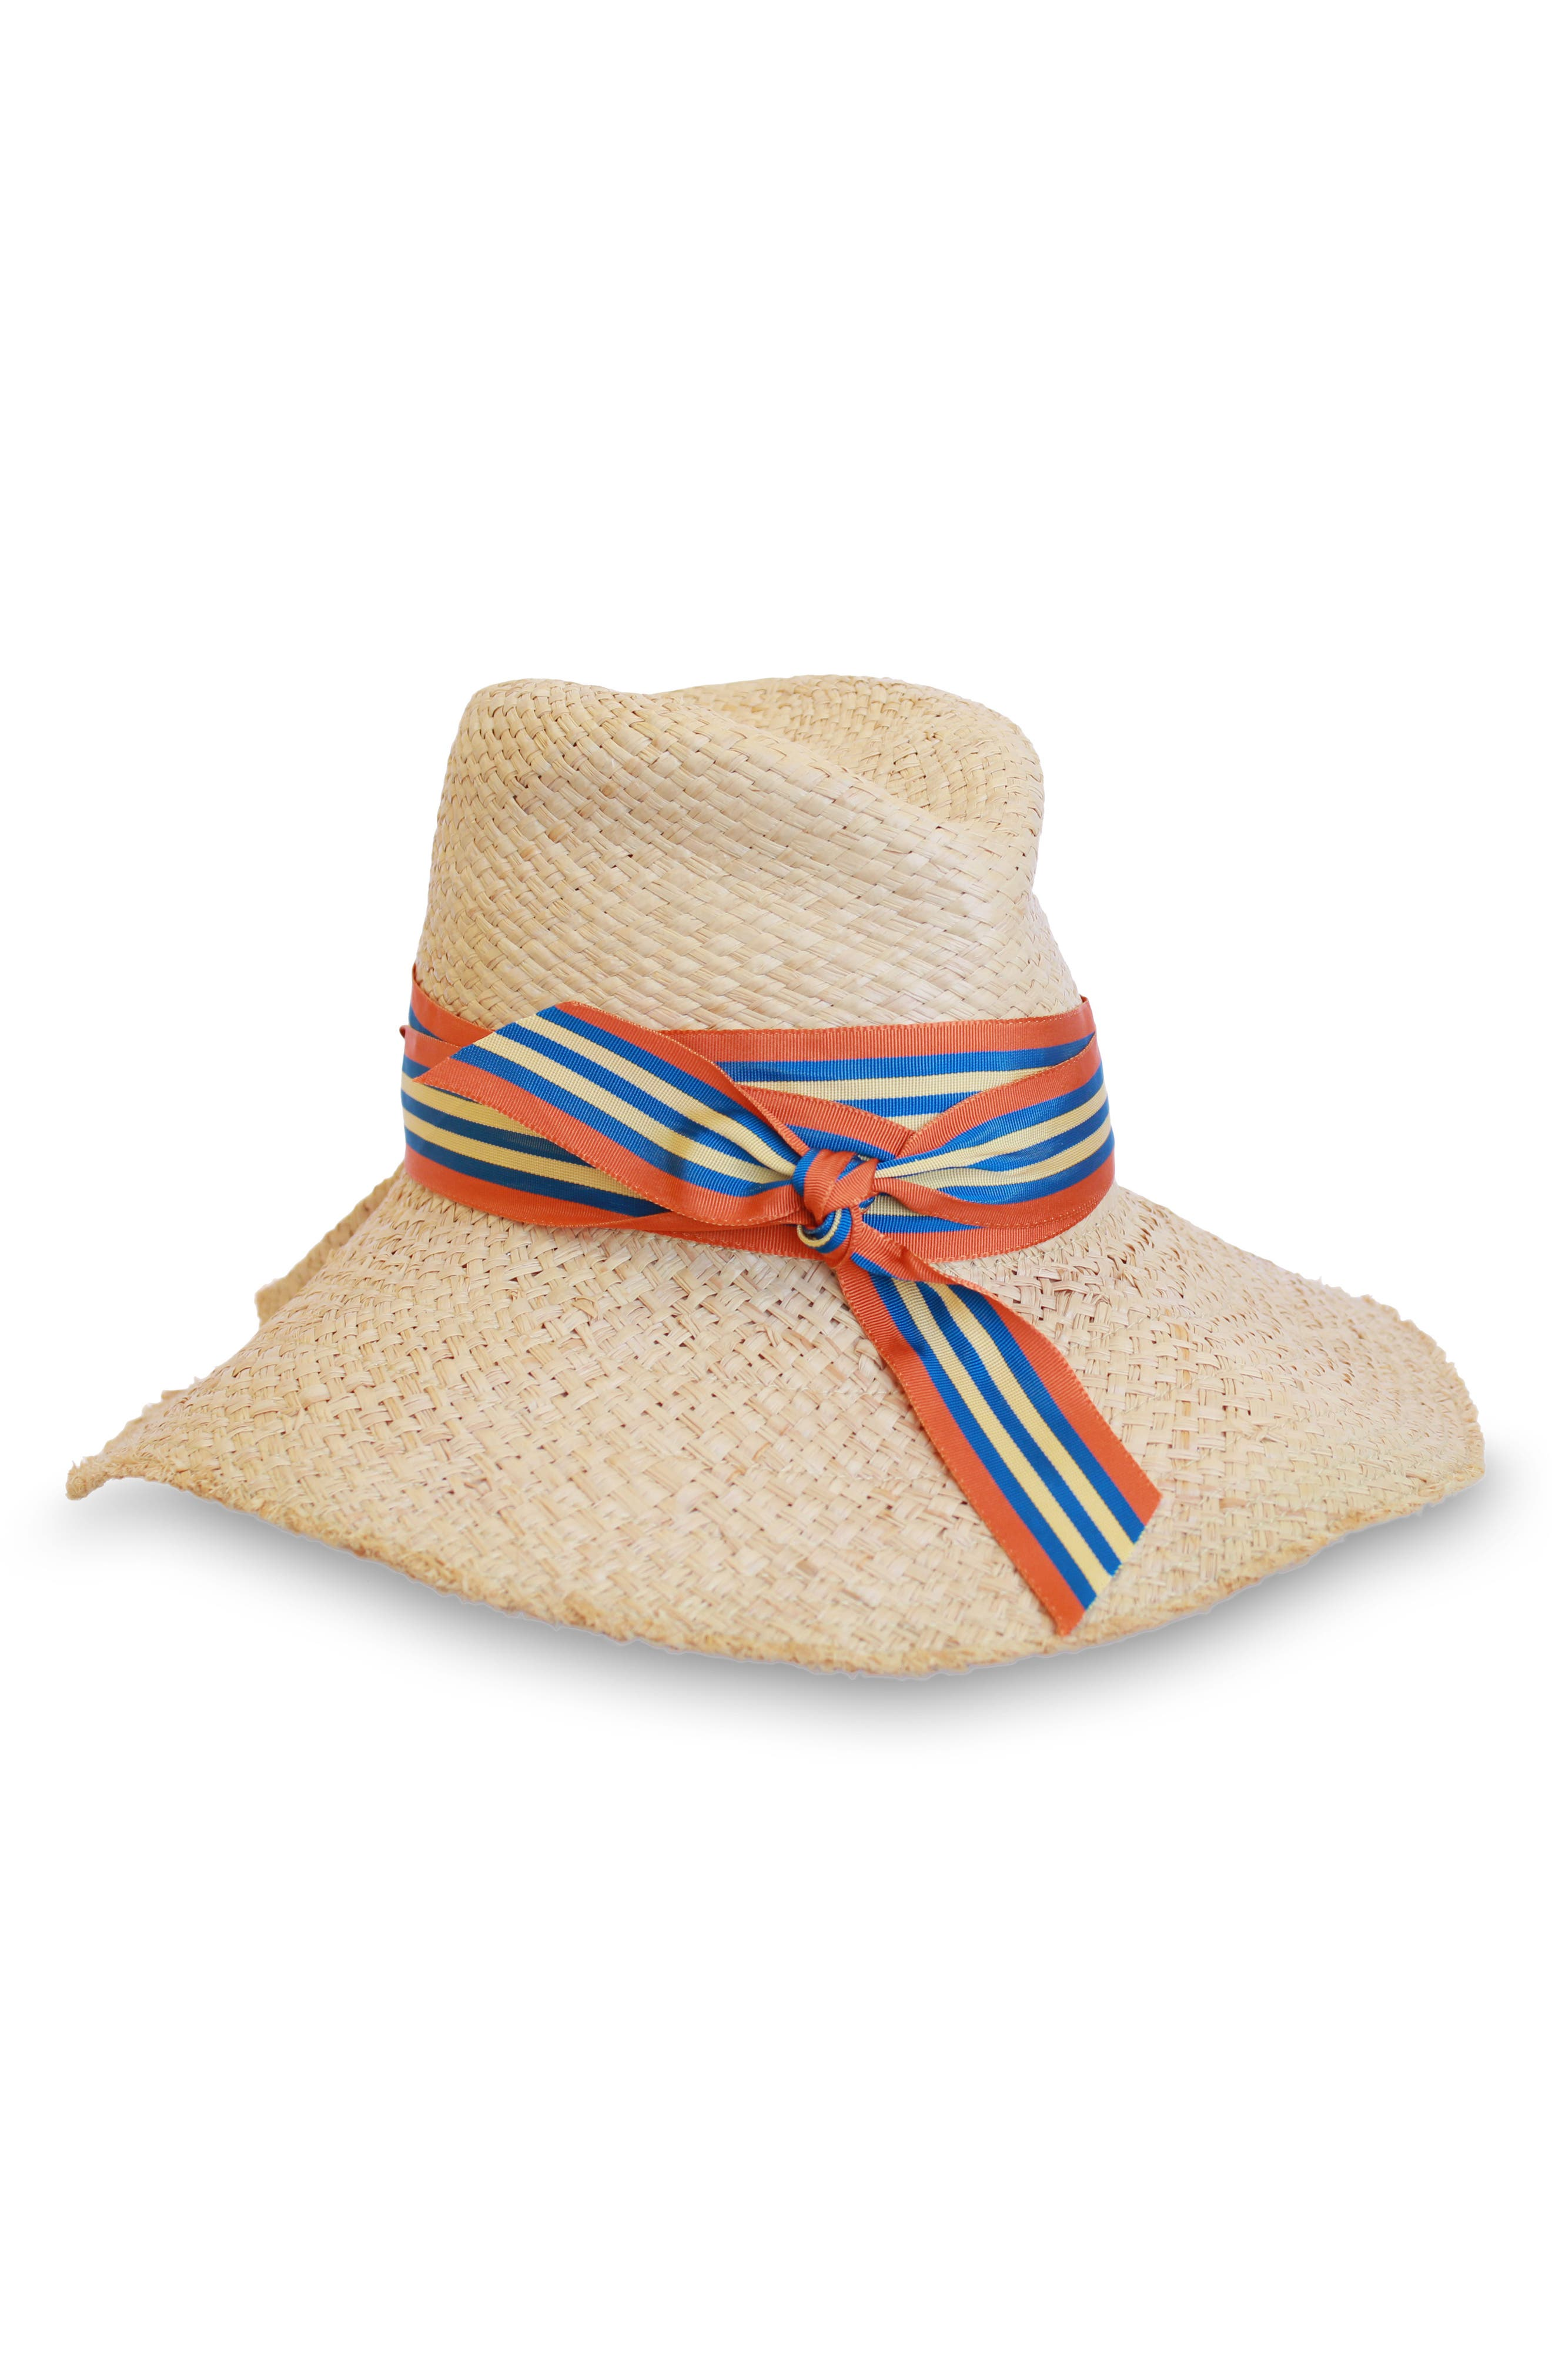 LOLA HATS First Aid Striped Band Straw Hat - Beige in Natural/ Cabana